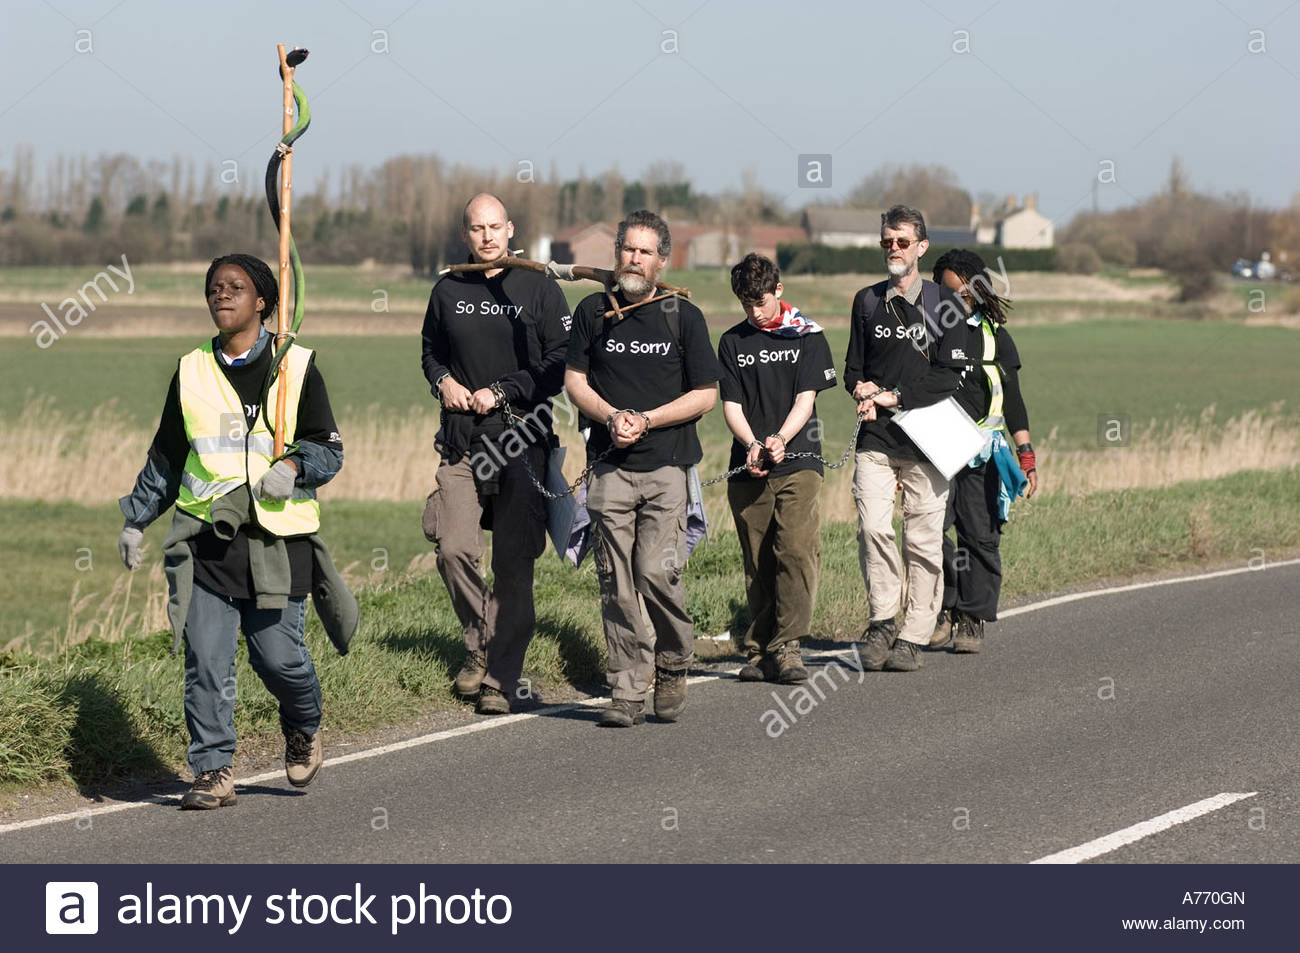 christians on a pilgrimage carrying a cross in rememberance of slavery - Stock Image